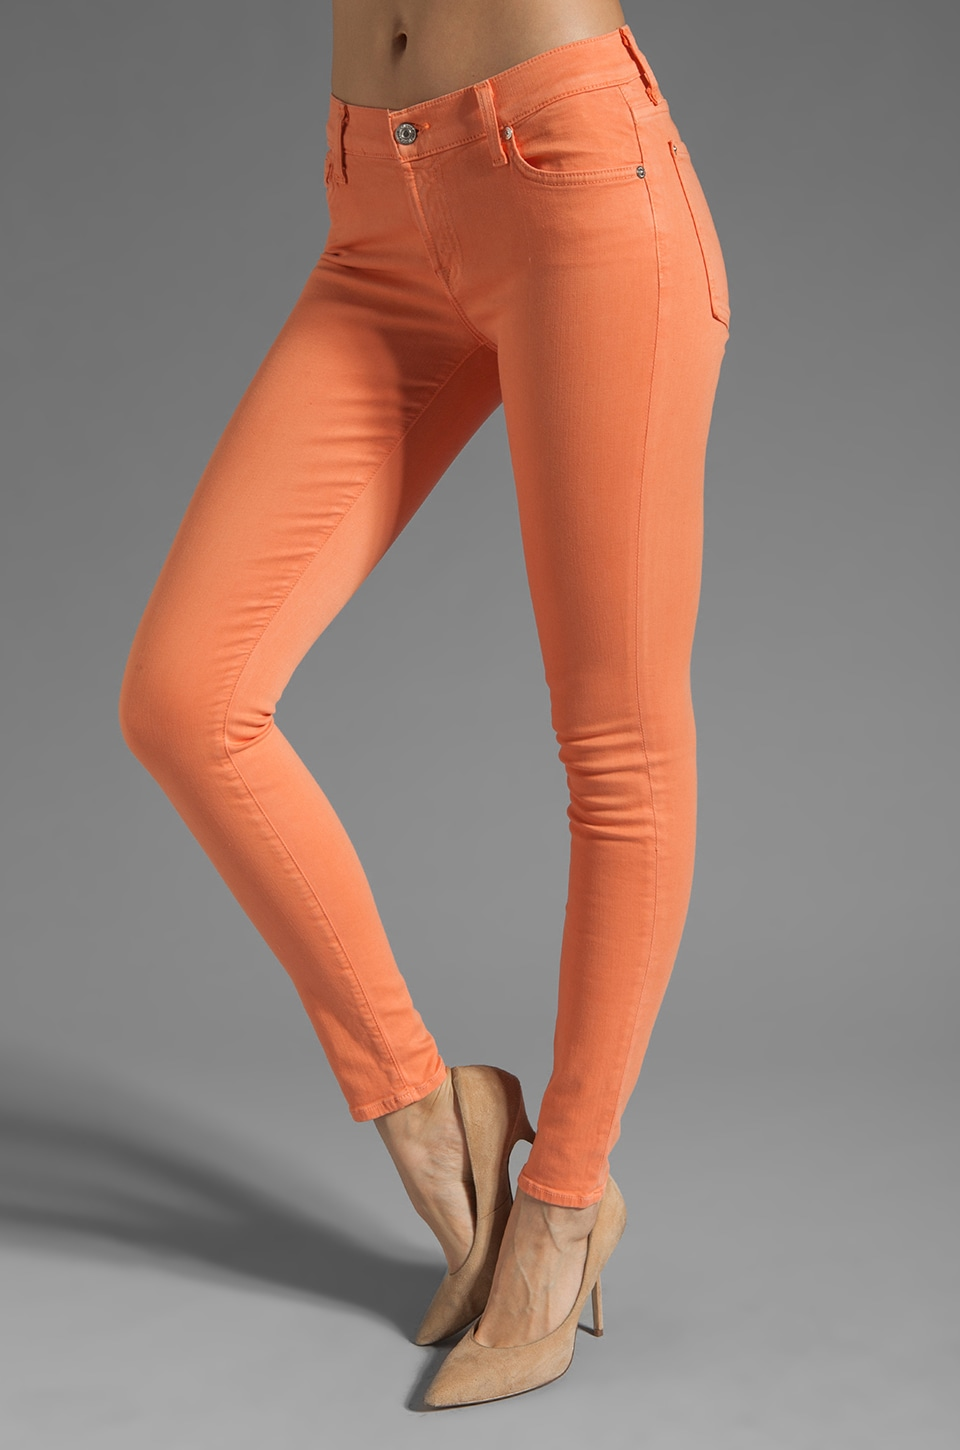 7 For All Mankind The Skinny Slim Illusion in Apricot